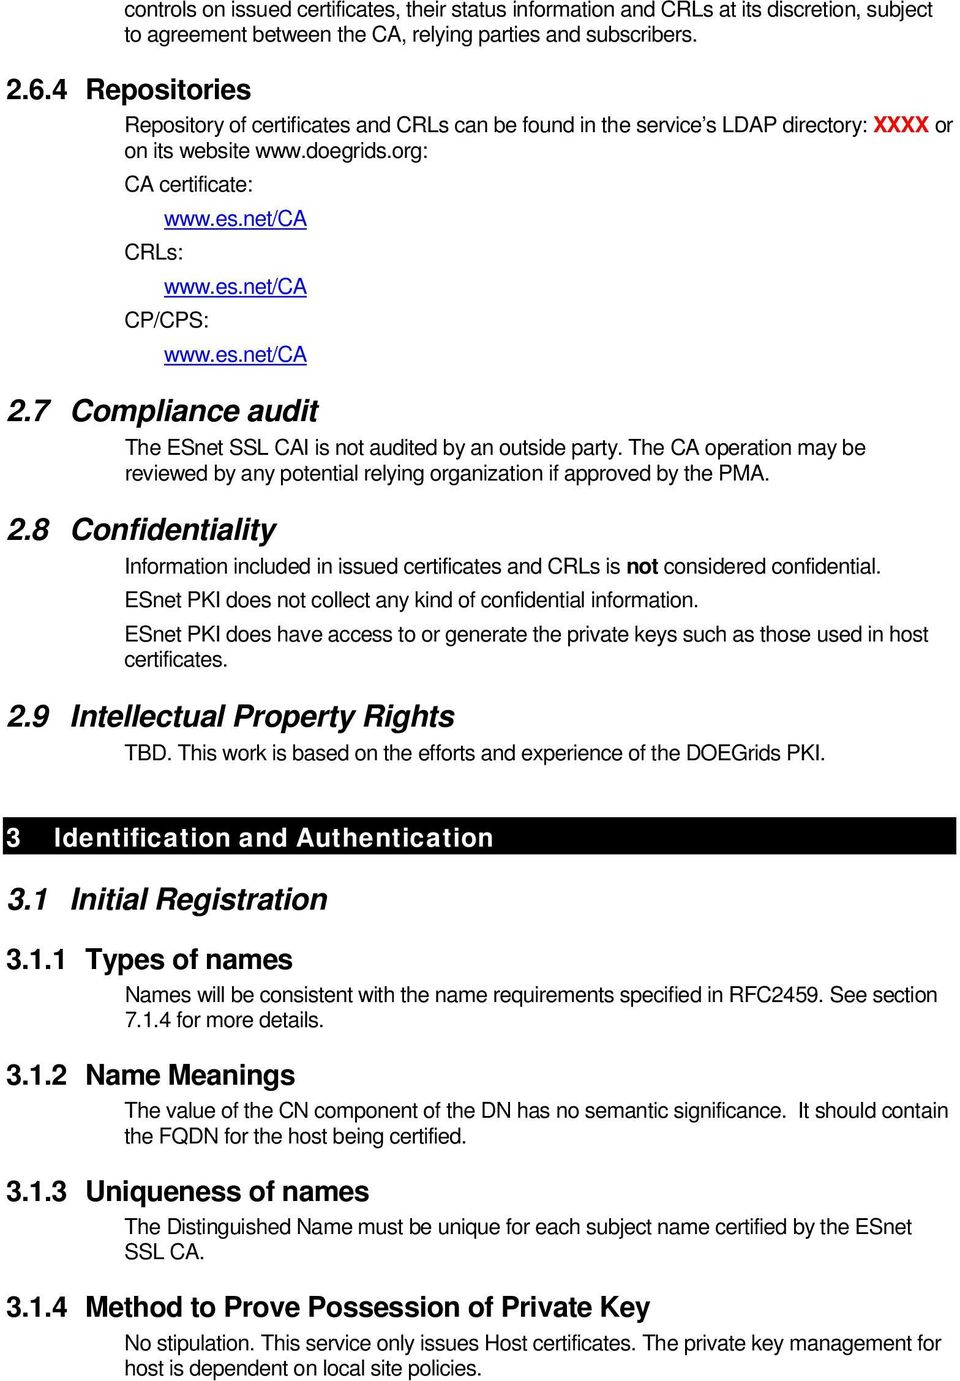 es.net/ca 2.7 Compliance audit The ESnet SSL CAI is not audited by an outside party. The CA operation may be reviewed by any potential relying organization if approved by the PMA. 2.8 Confidentiality Information included in issued certificates and CRLs is not considered confidential.